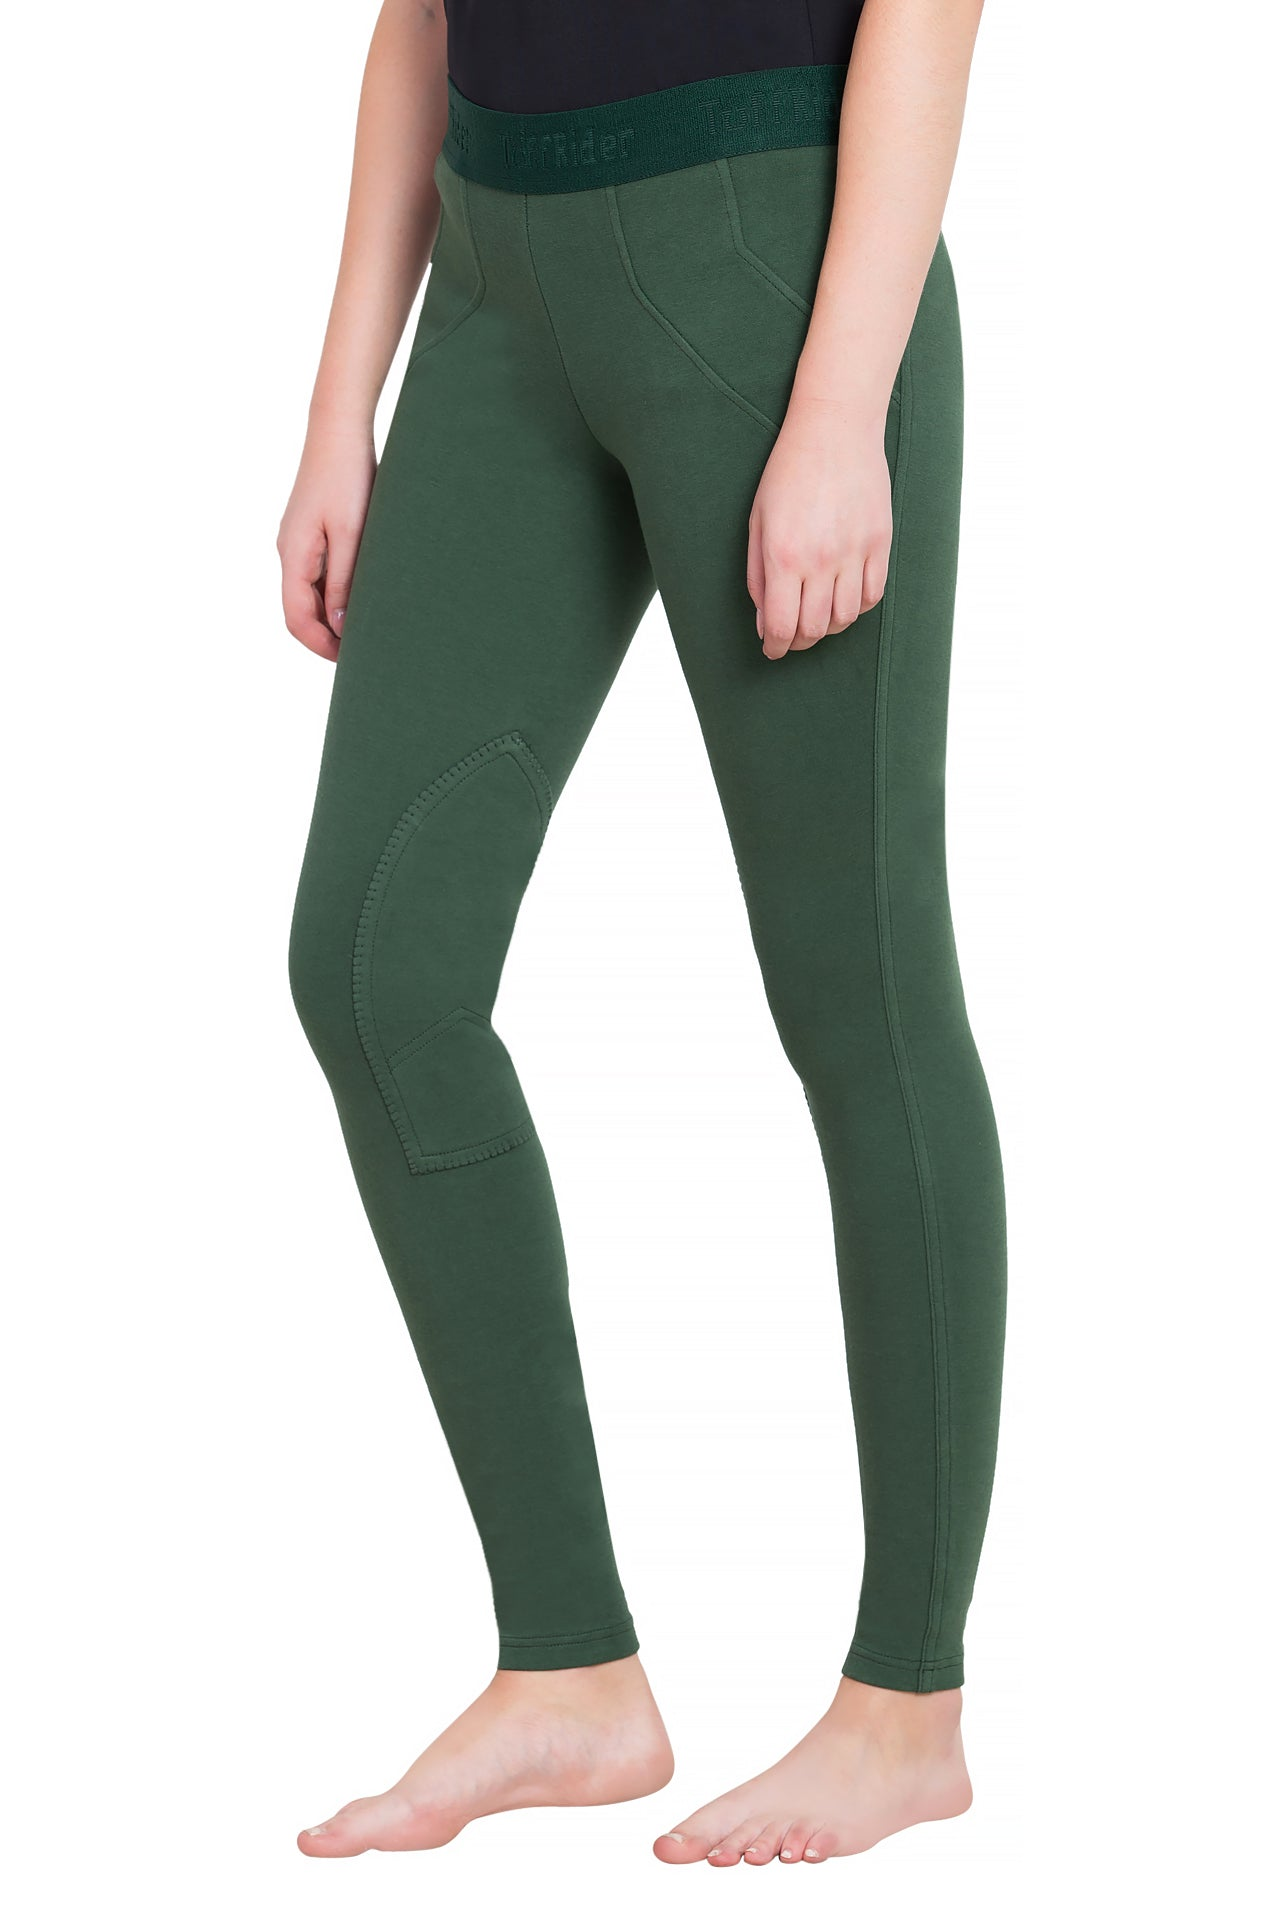 TuffRider Ladies Cotton Schoolers Riding Tights_507